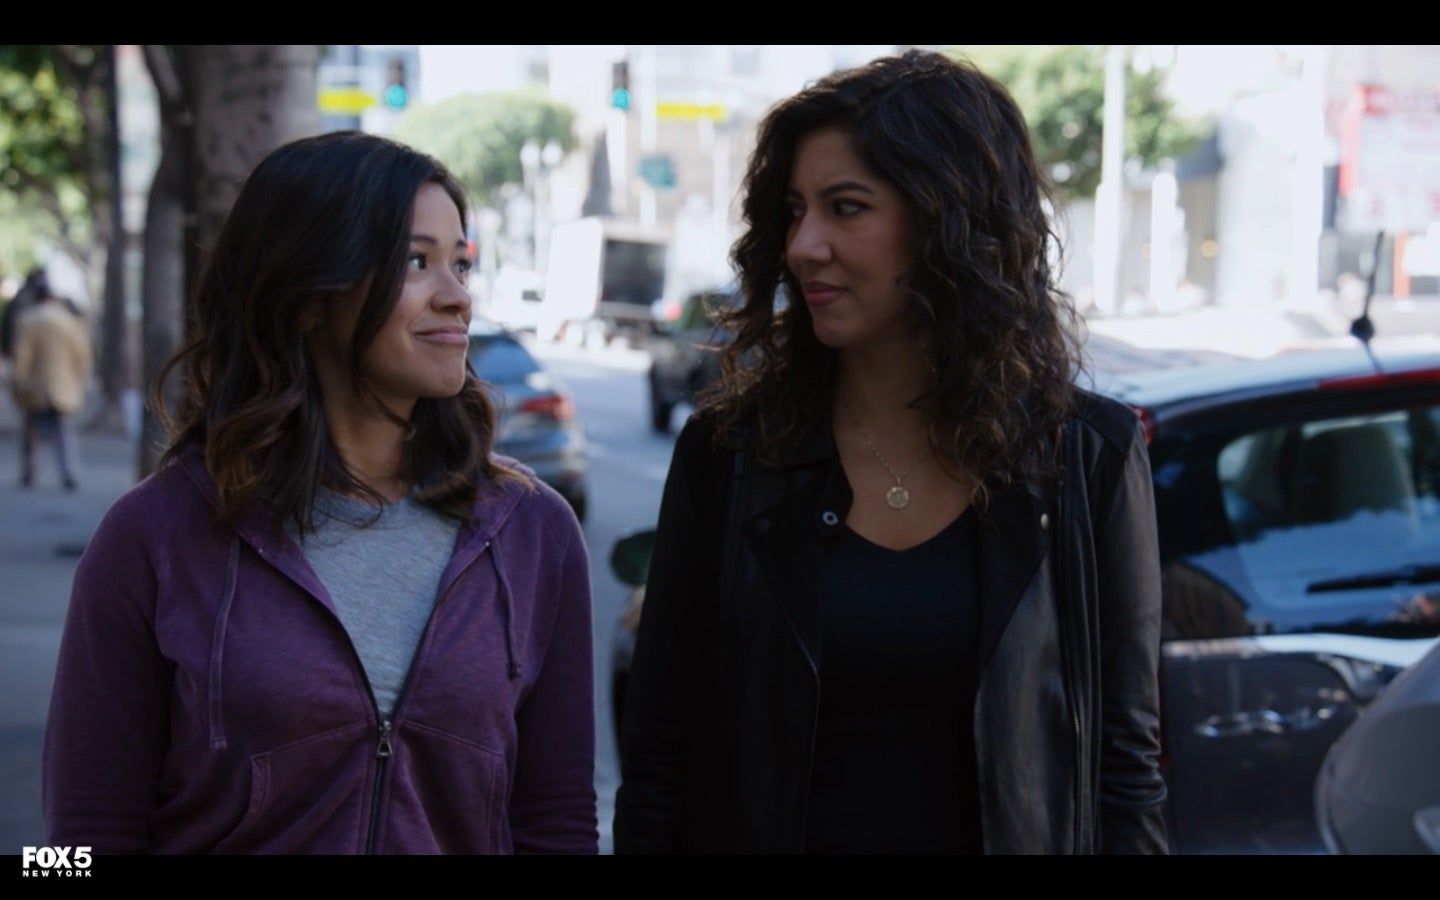 Rodriguez as Alicia and Beatriz as Rosa Diaz in the Season 5 finale of Brooklyn Nine-Nine.